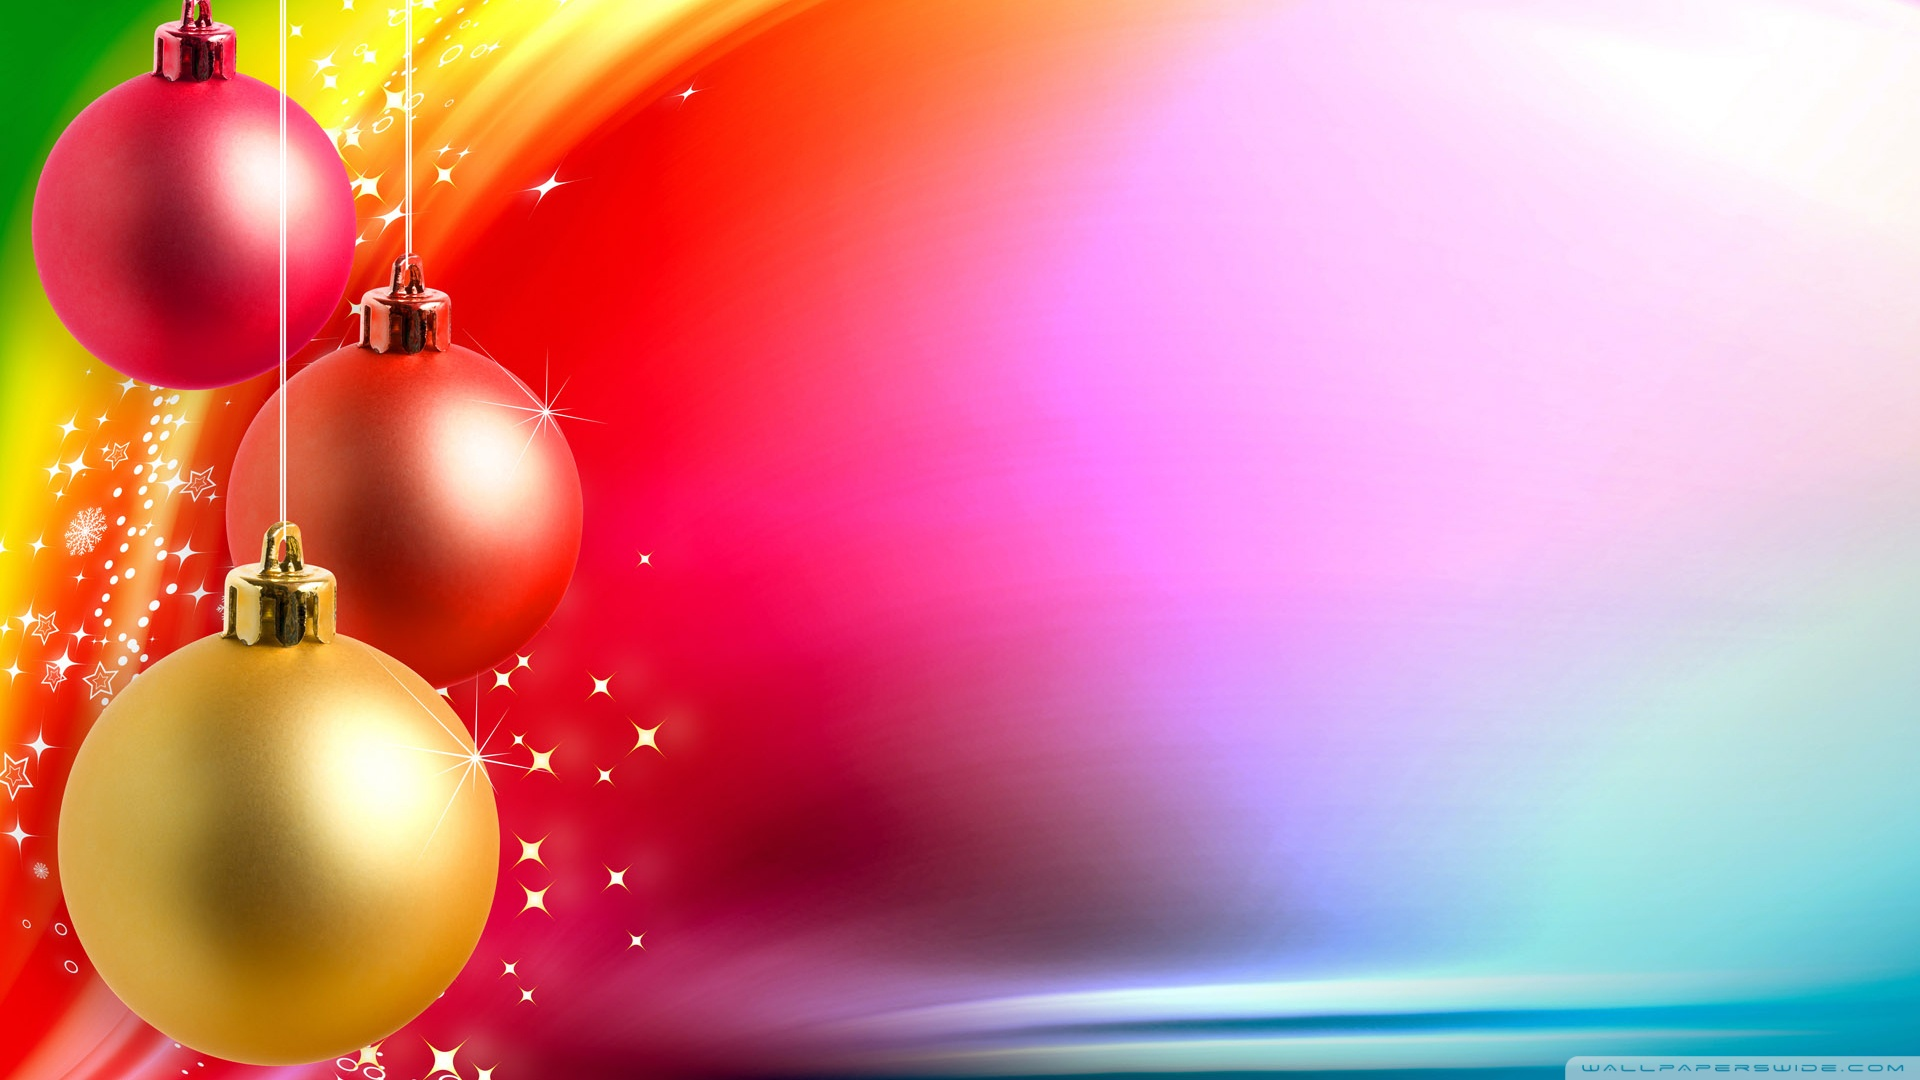 birthday background images for photoshop ; Christmas_background-4